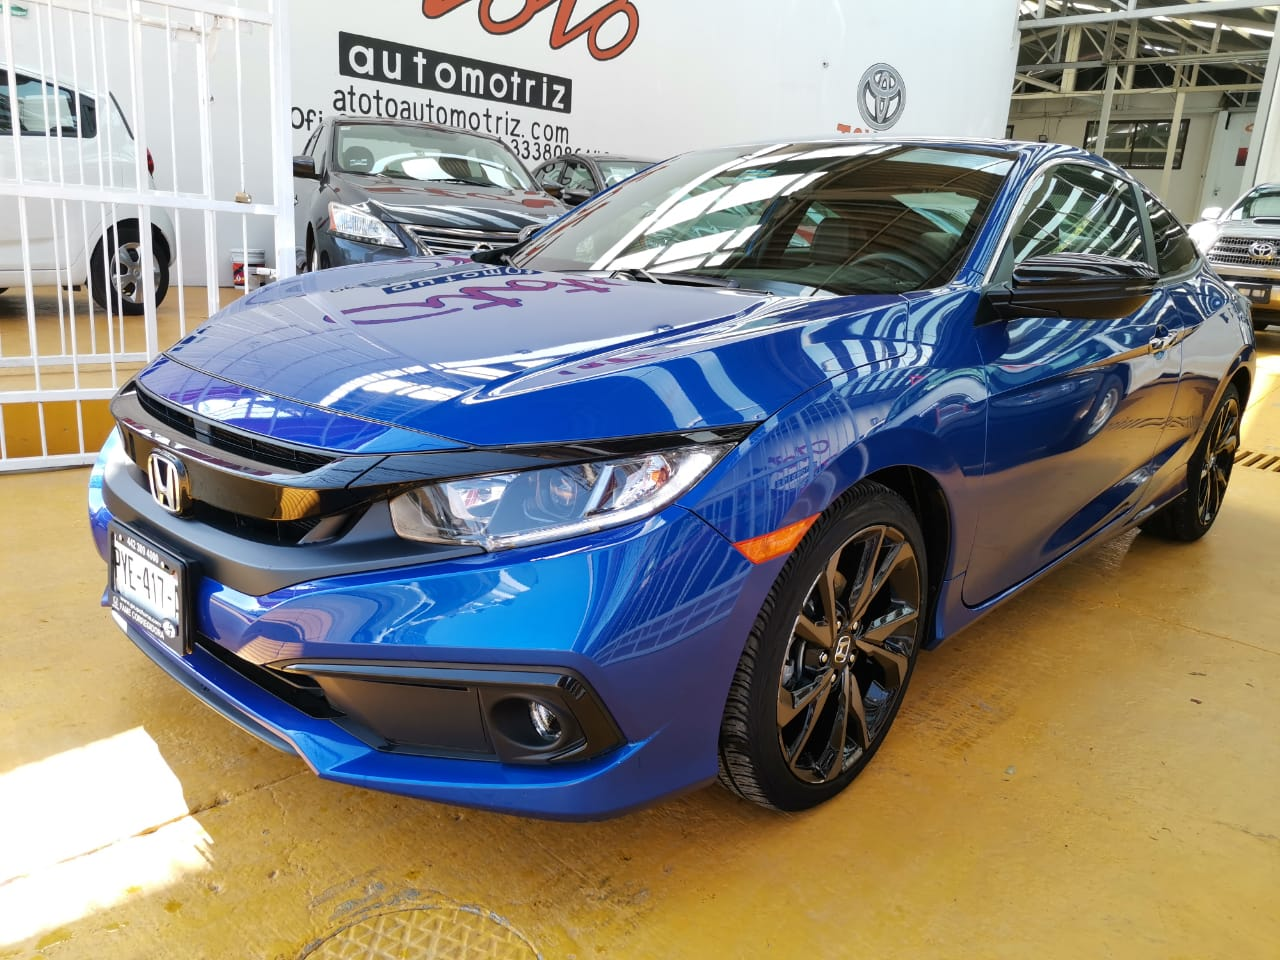 Honda Civic, 2019 Turbo Plus